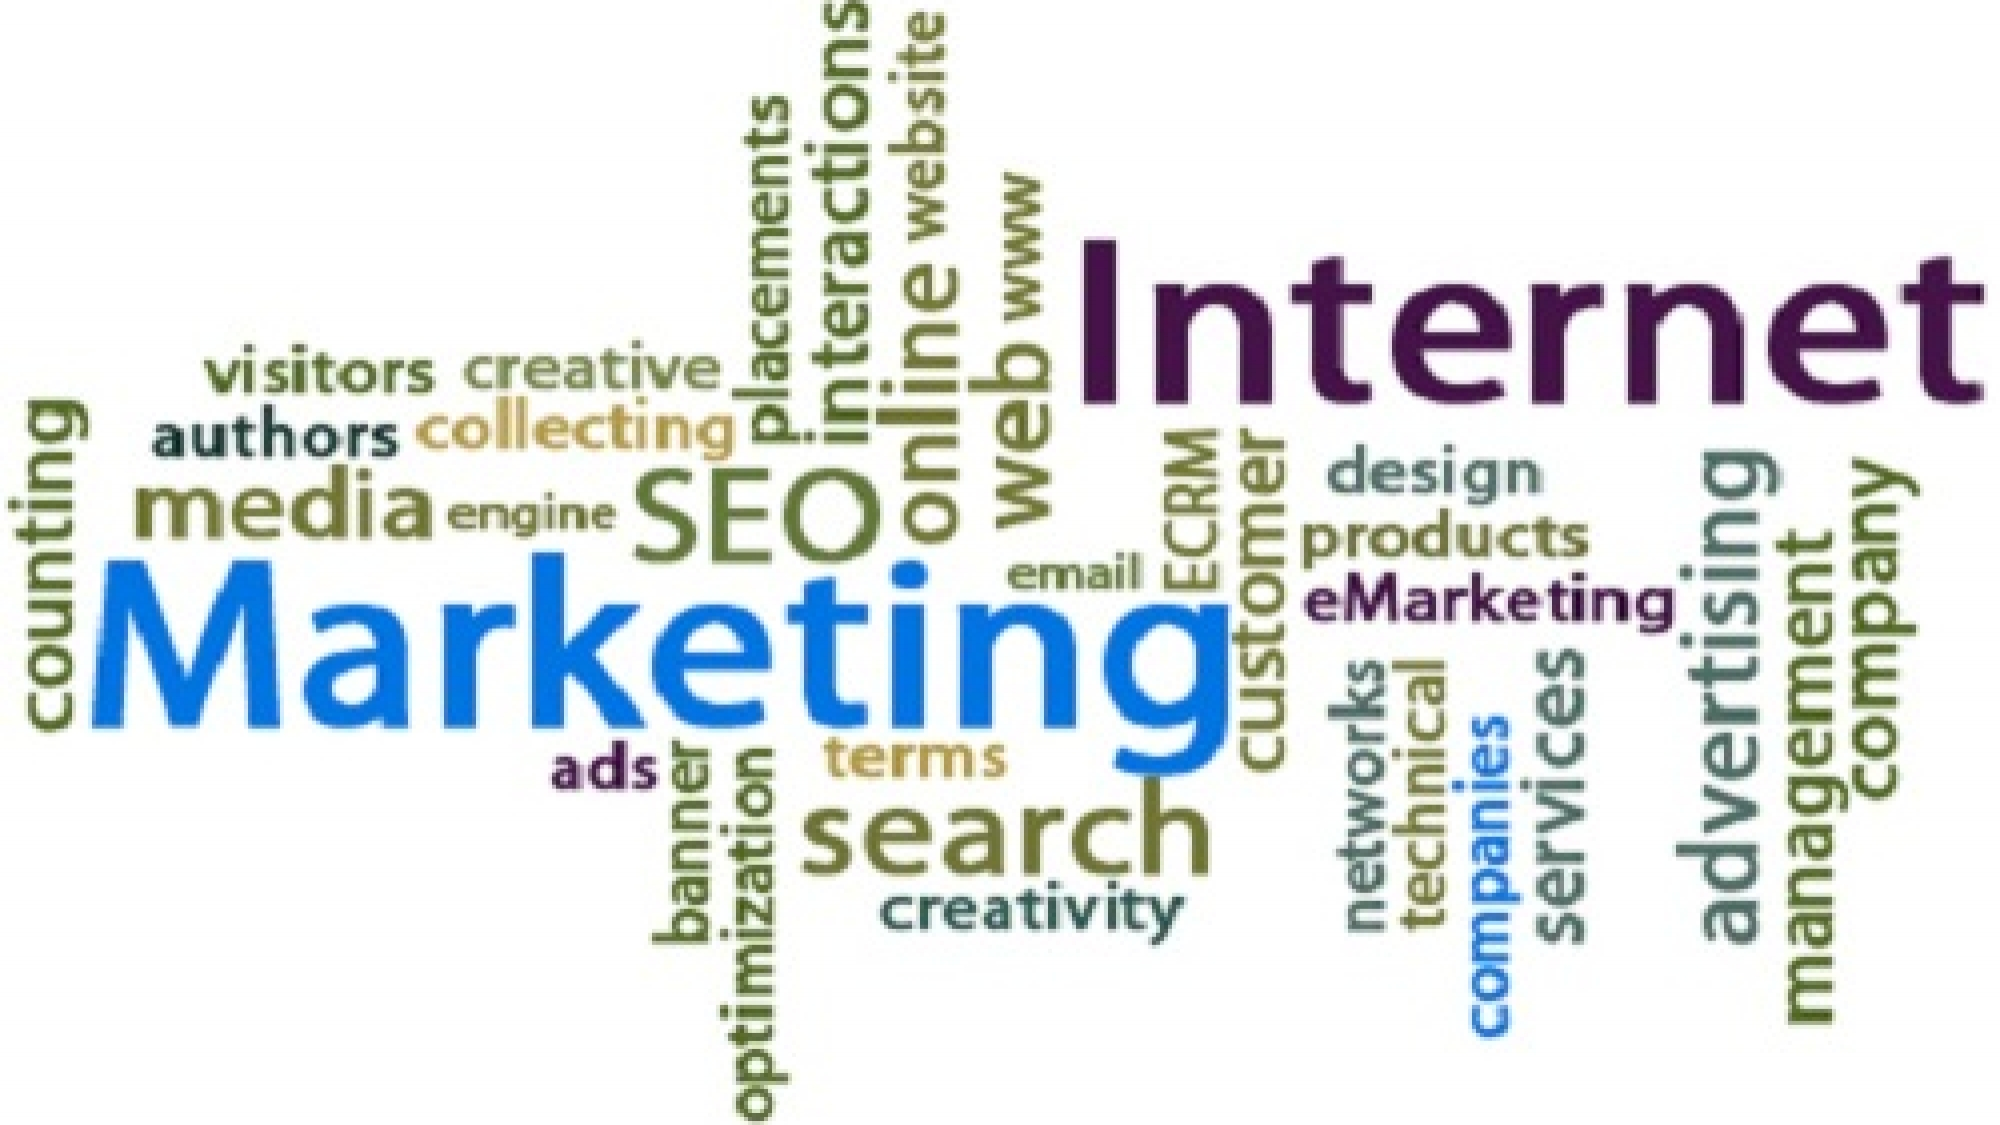 What Should I Look For In An Online Marketing Company